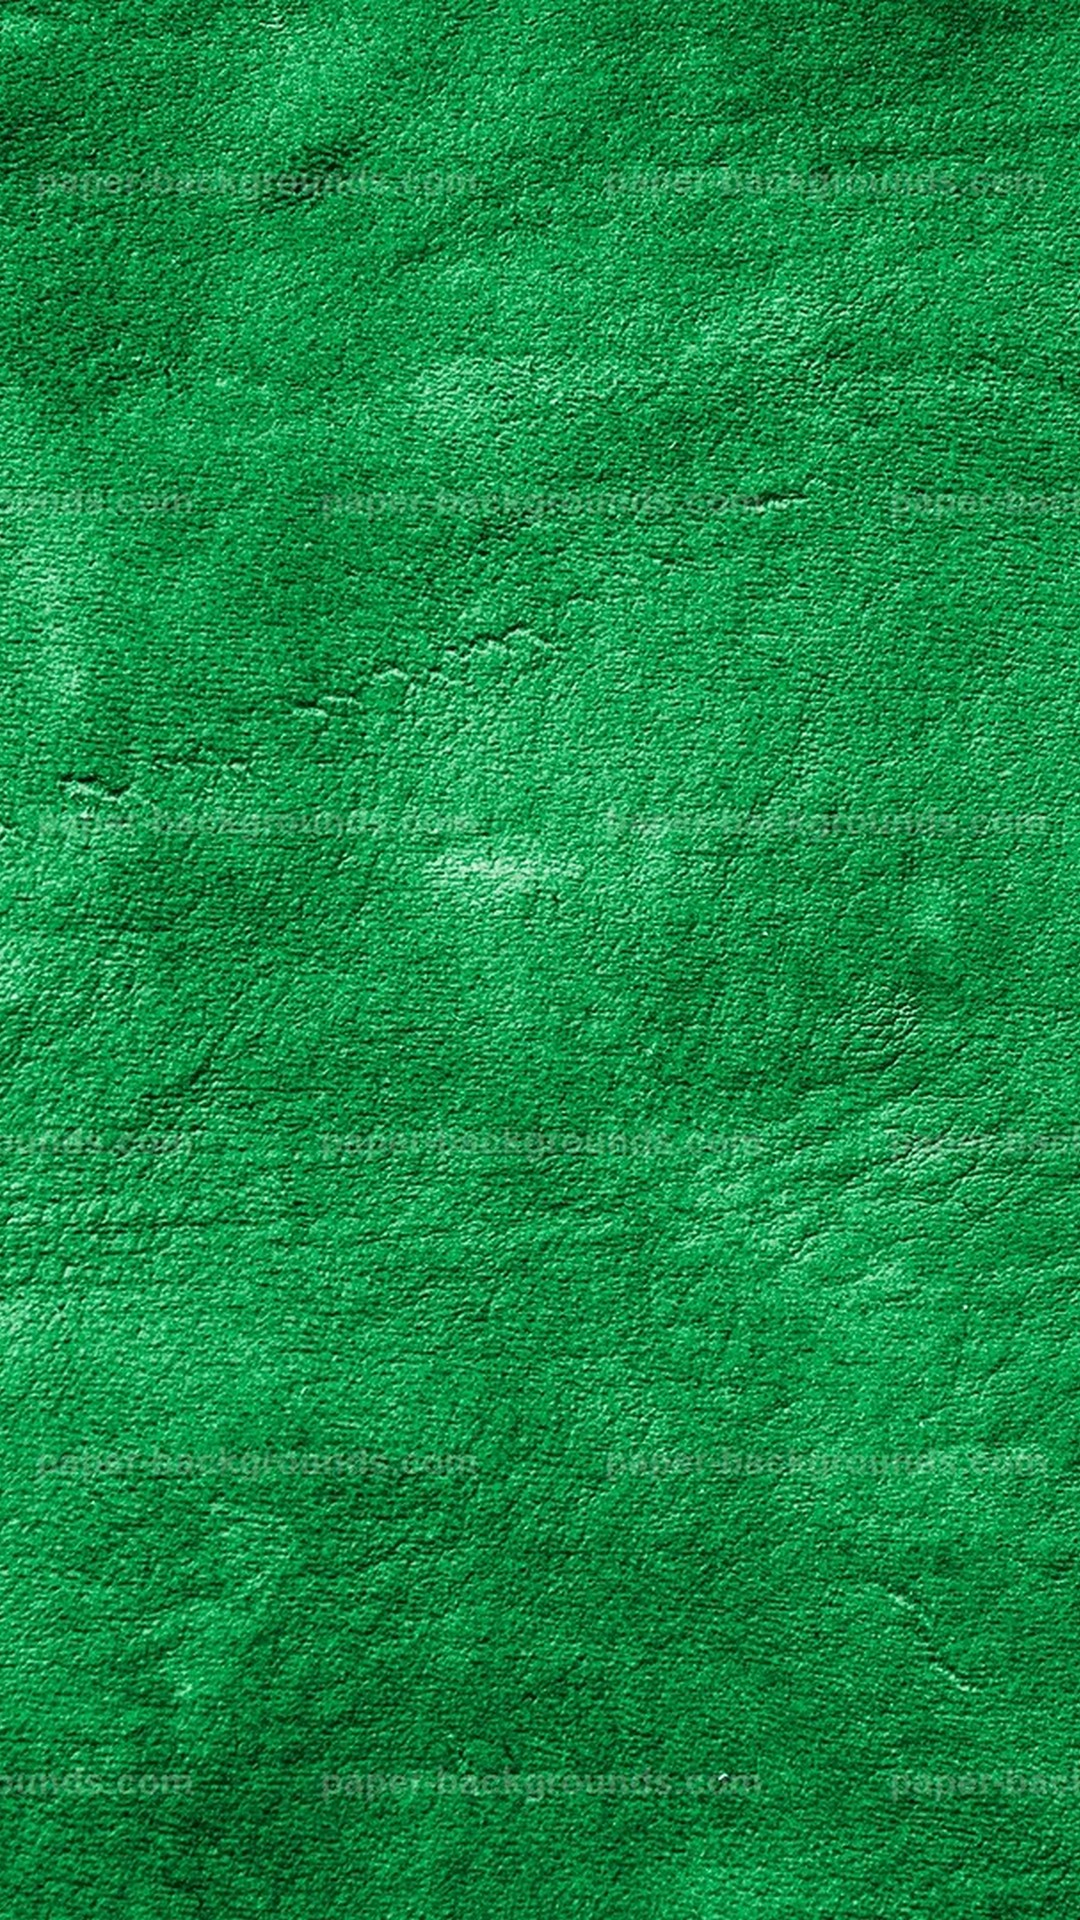 Android Wallpaper Hd Emerald Green 2020 Android Wallpapers